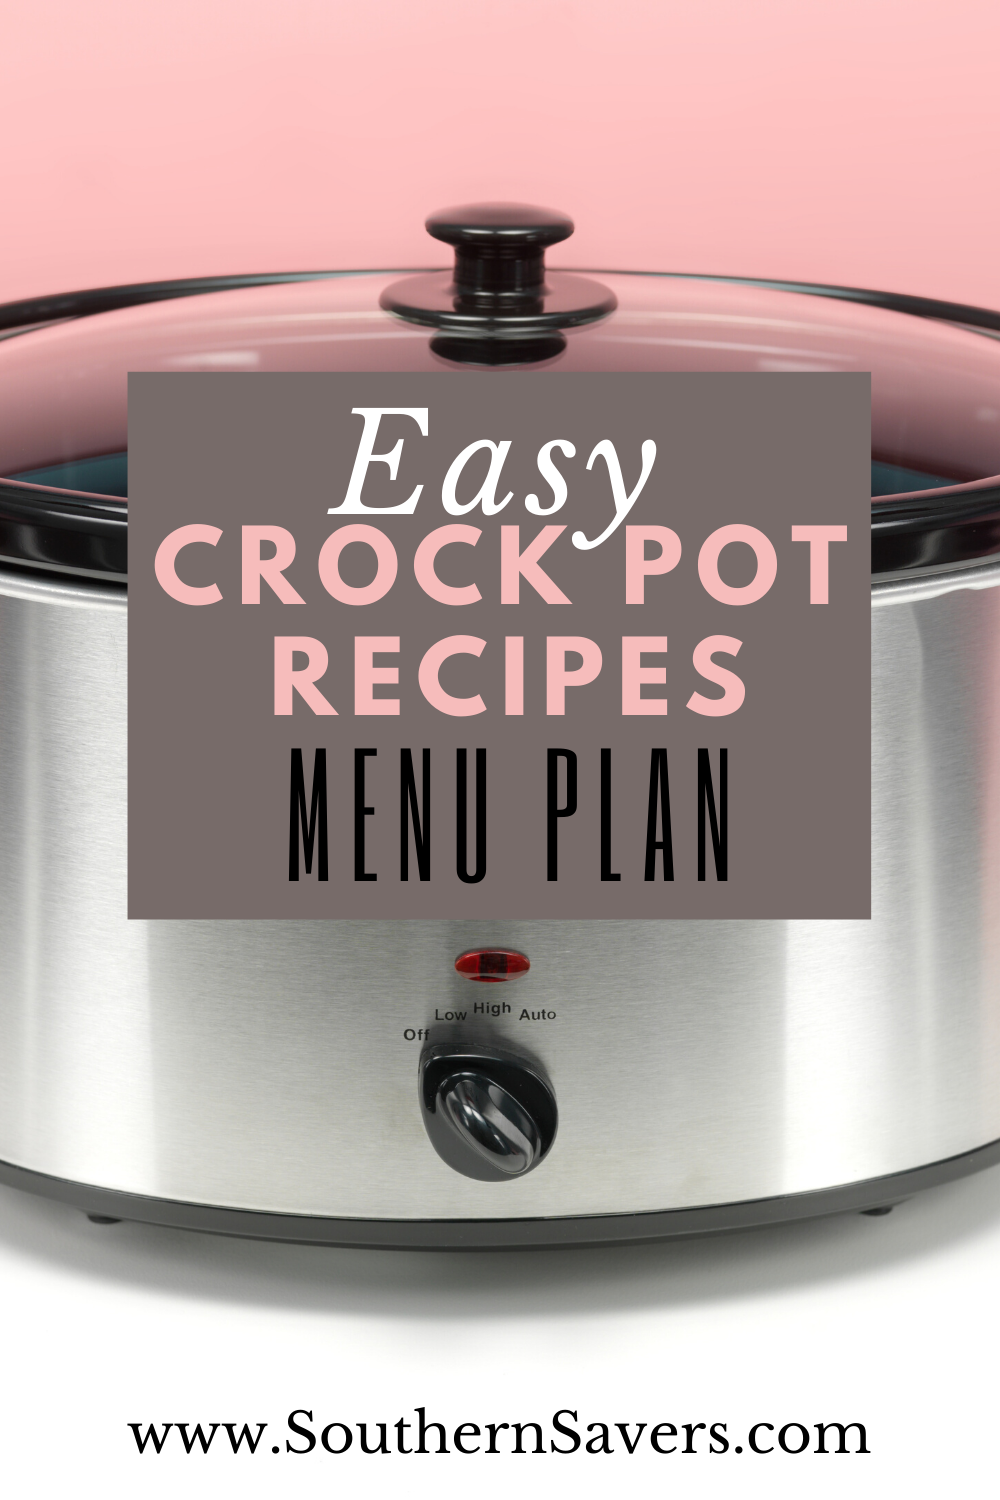 Looking for some easy dinner meals? Here's a list of yummy crock pot recipes to take the hard work out of dinner prep and simplify your mental load.